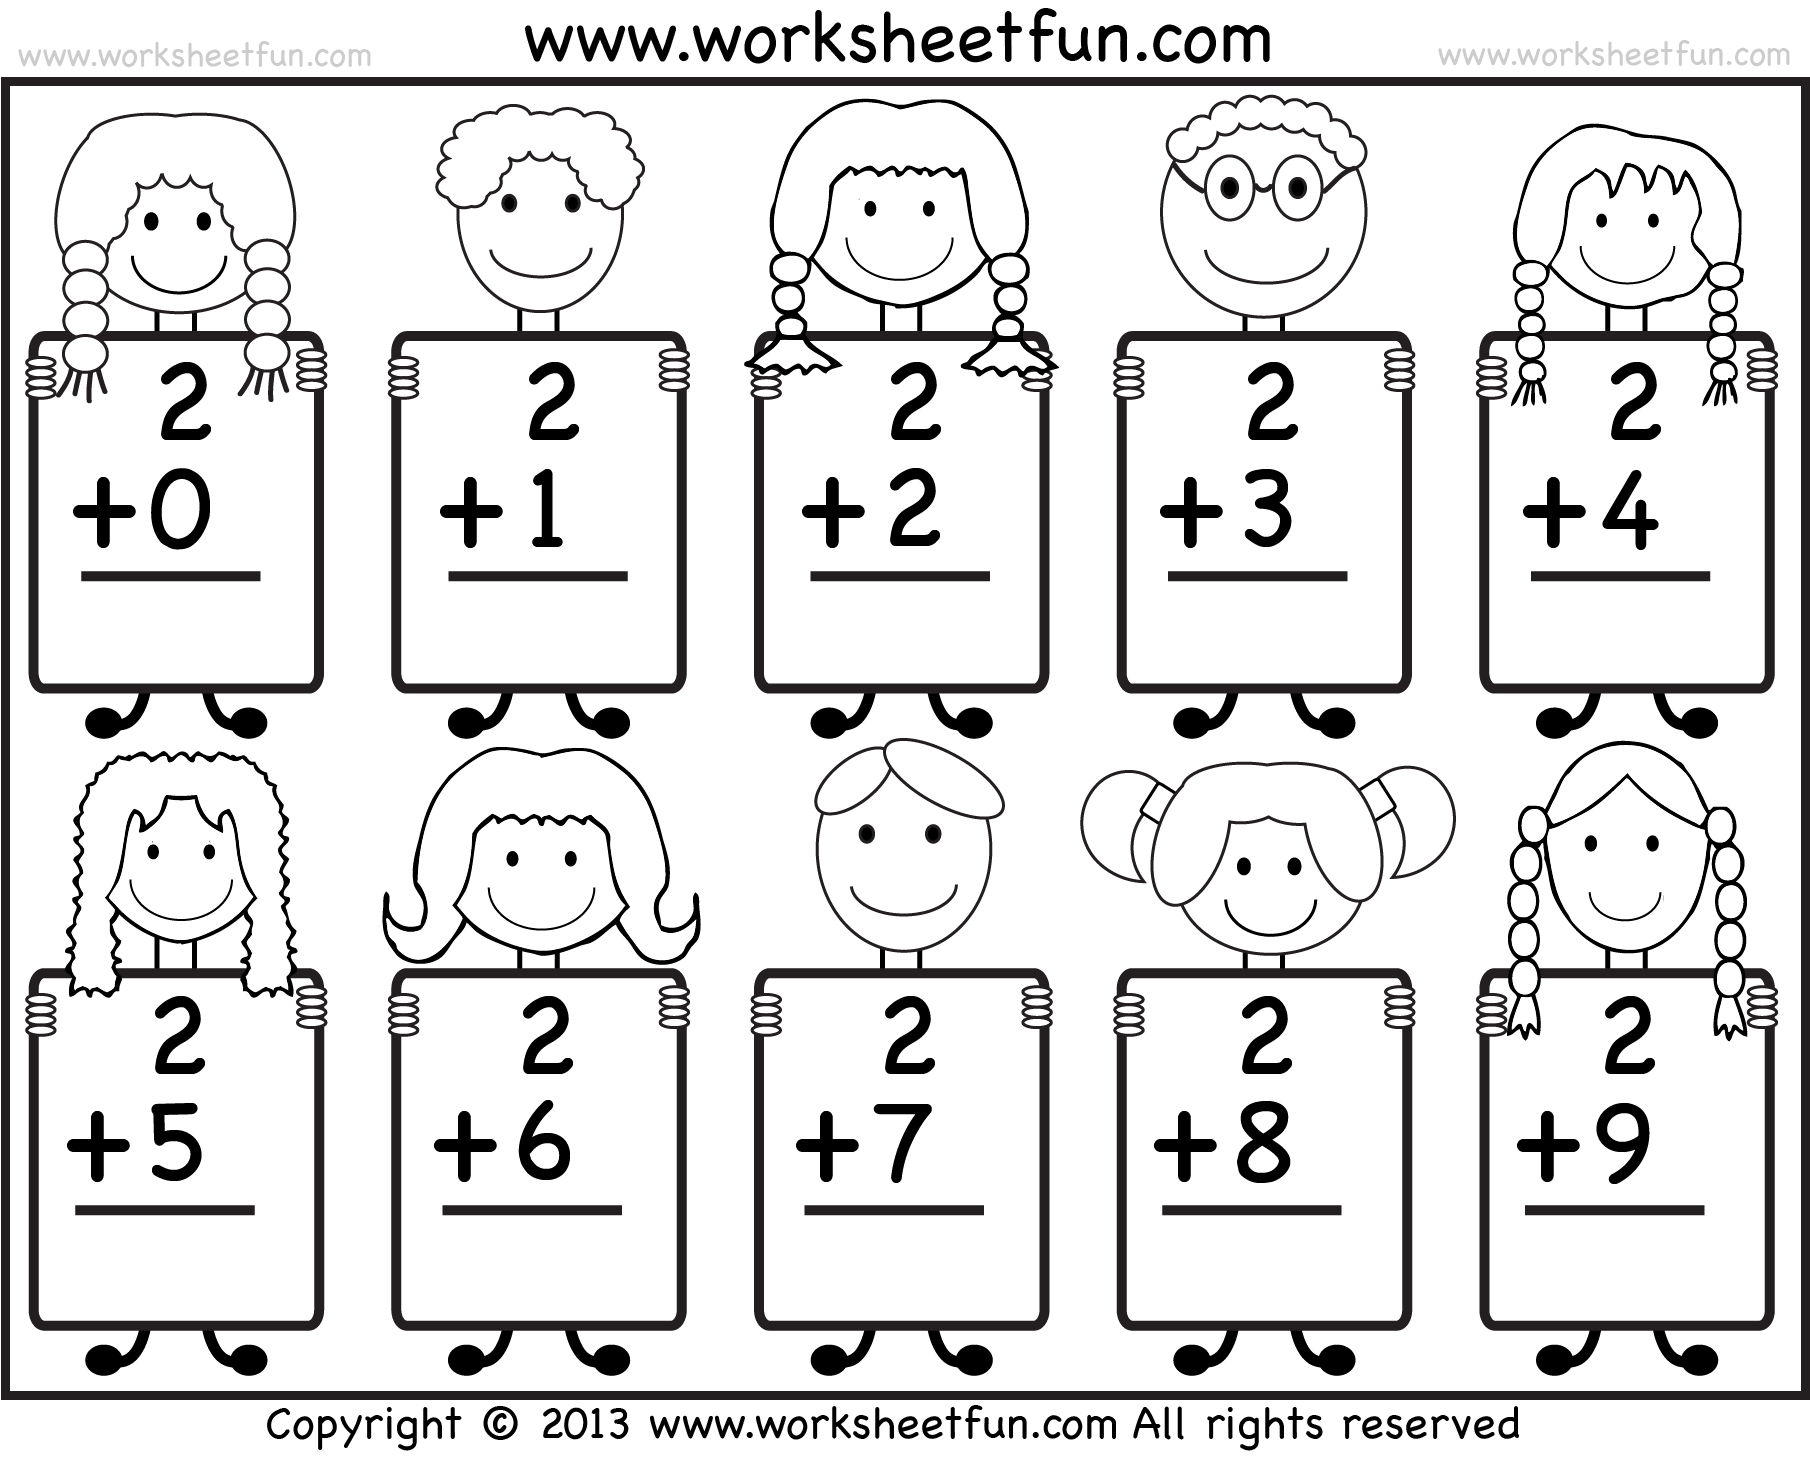 worksheet Free Printable Addition Worksheets For Kindergarten addition worksheets for kindergarten with pictures laptuoso math photos pigmu